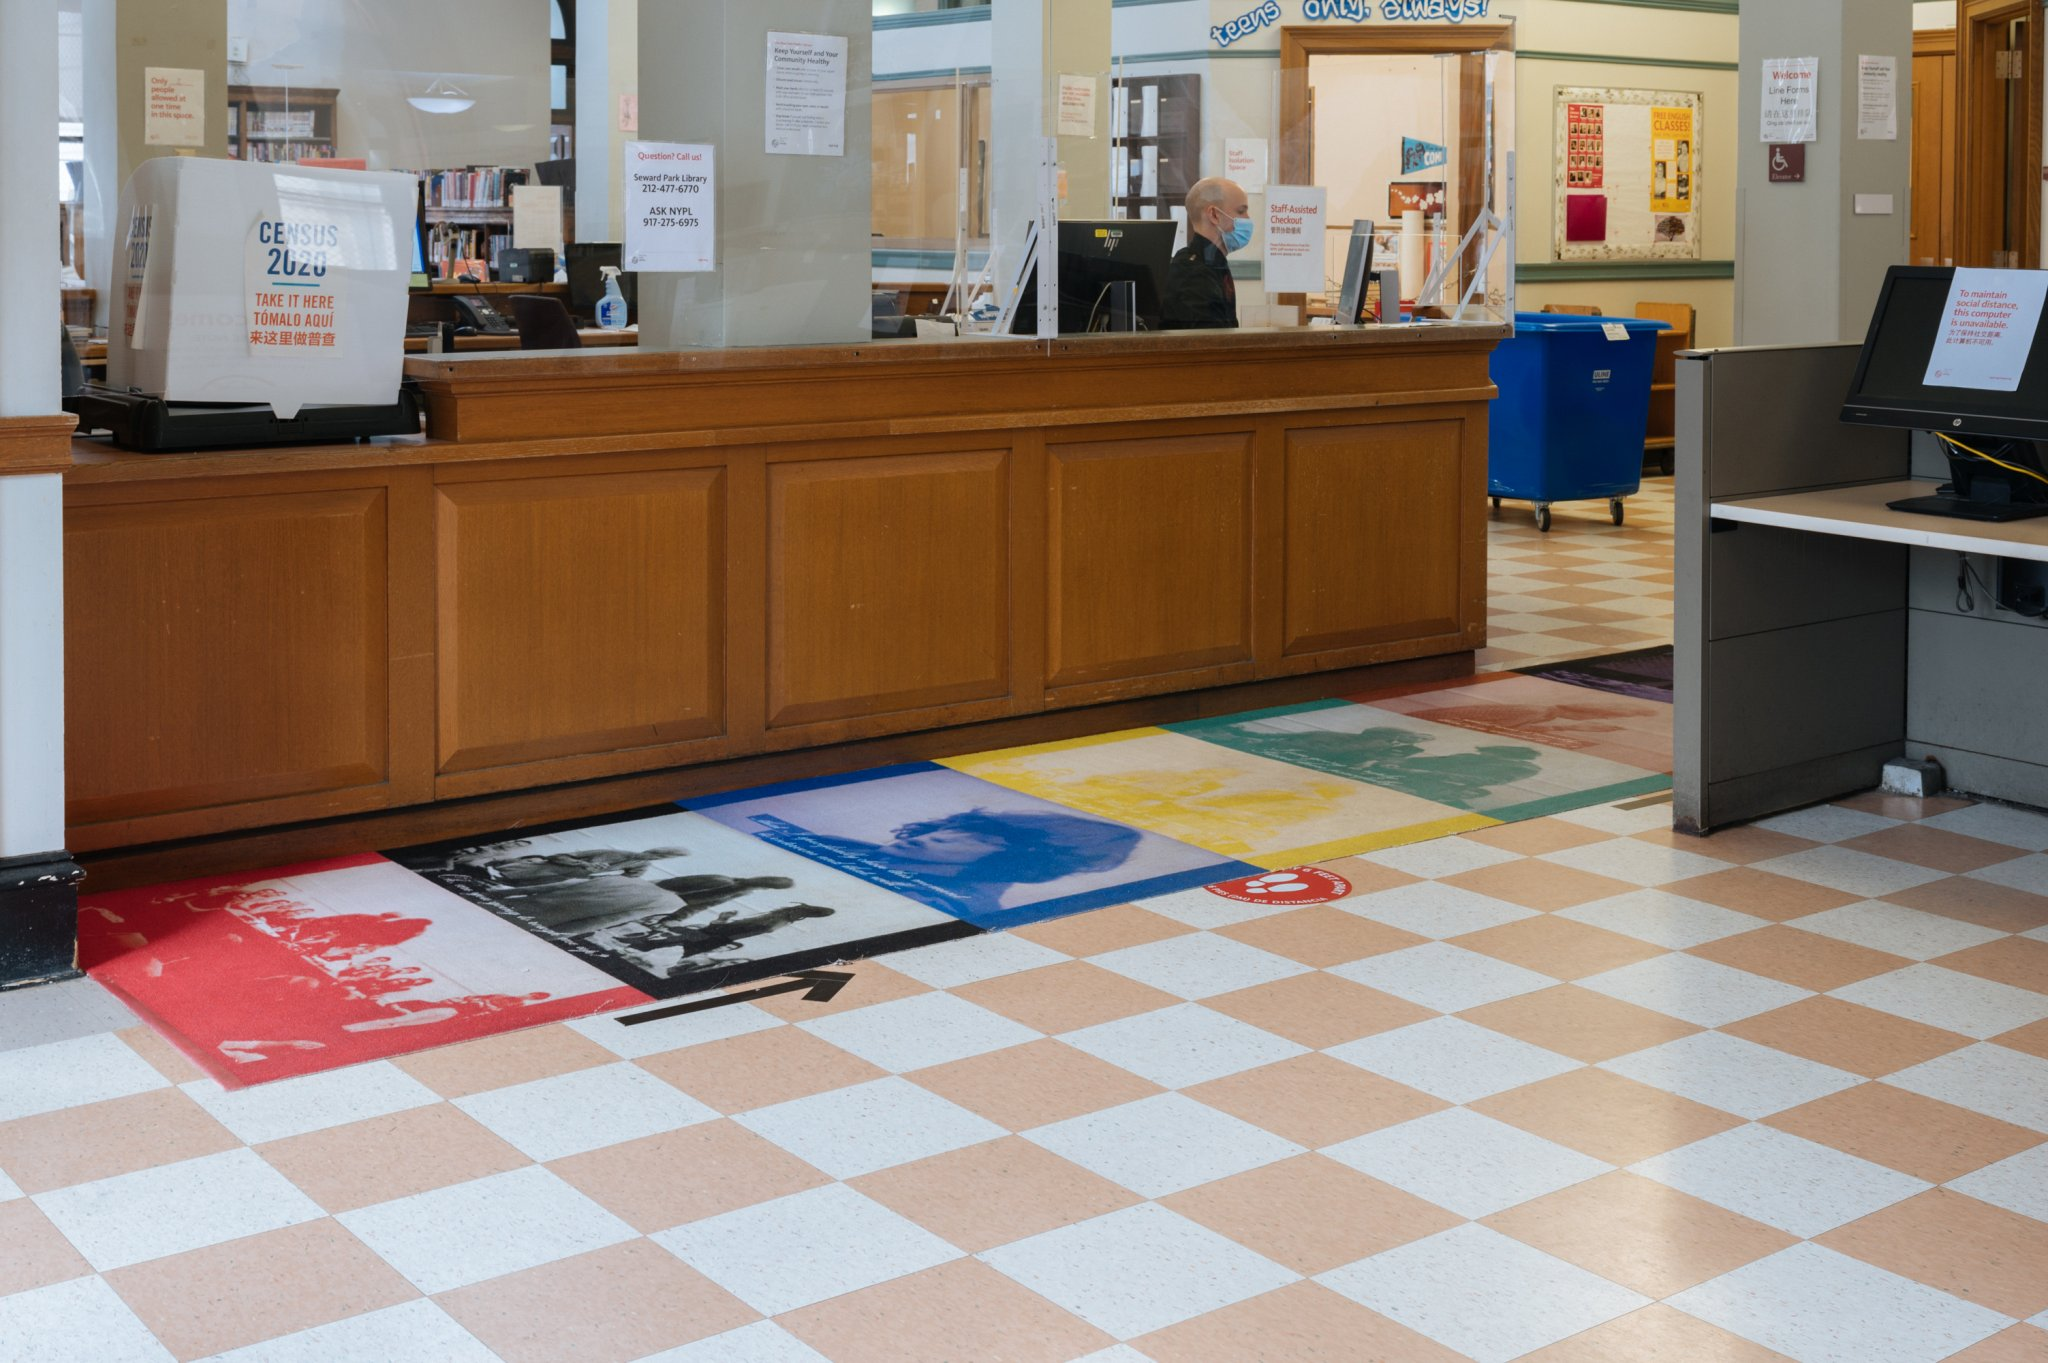 Victoria Colmegna, Mod, 2020. Dye-sublimation printed carpet. 48 x 192 in. Installed permanently at Seward Park Library, 192 E Broadway, New York, NY 10002.